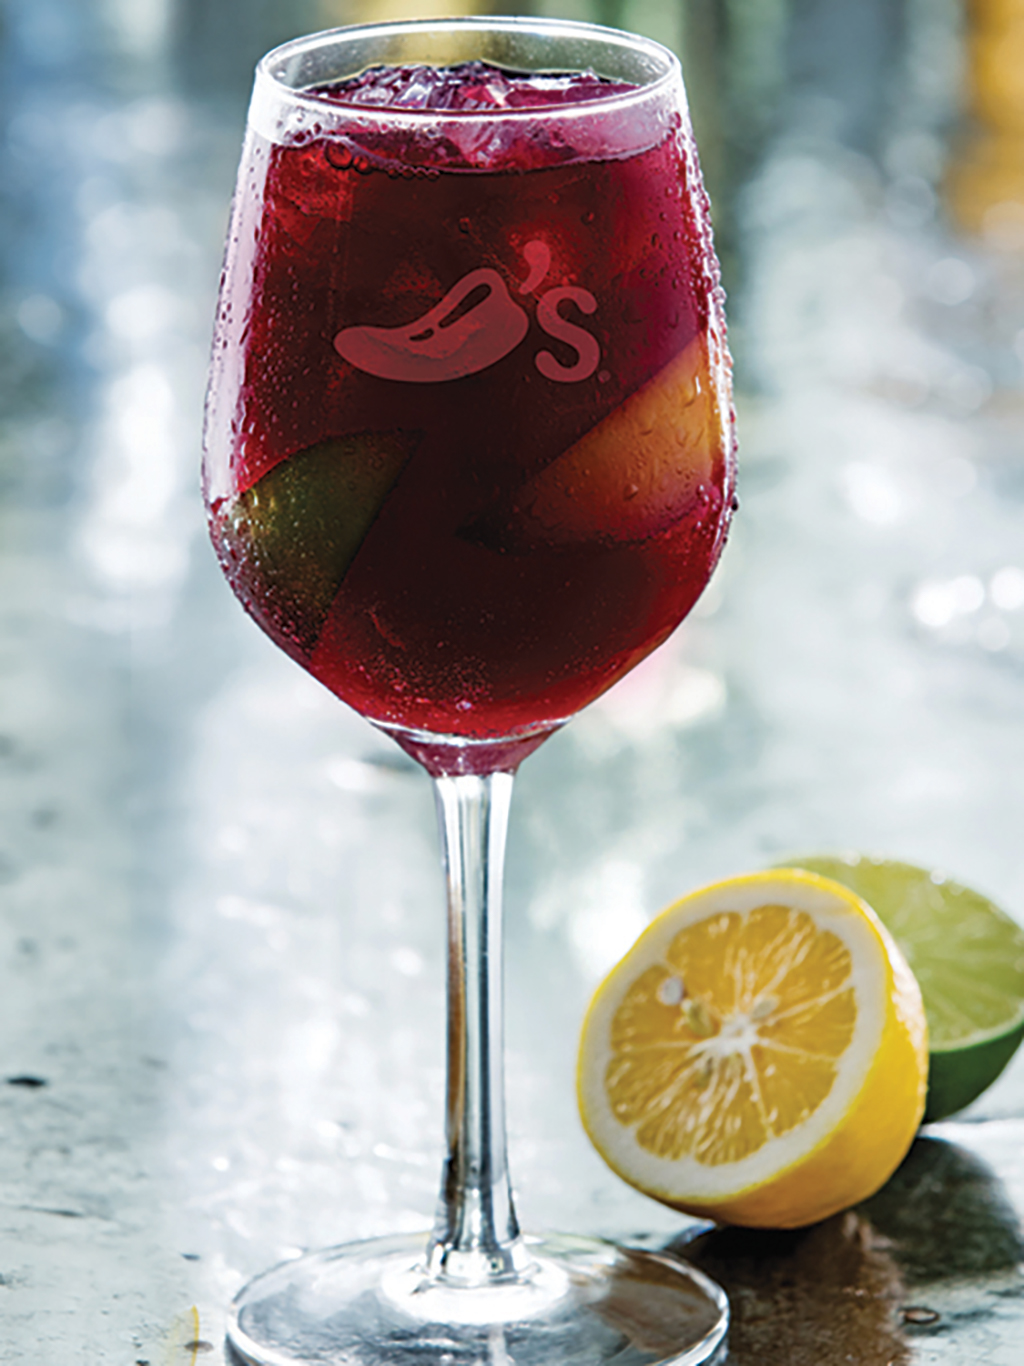 Chili's Tequila Red Sangria